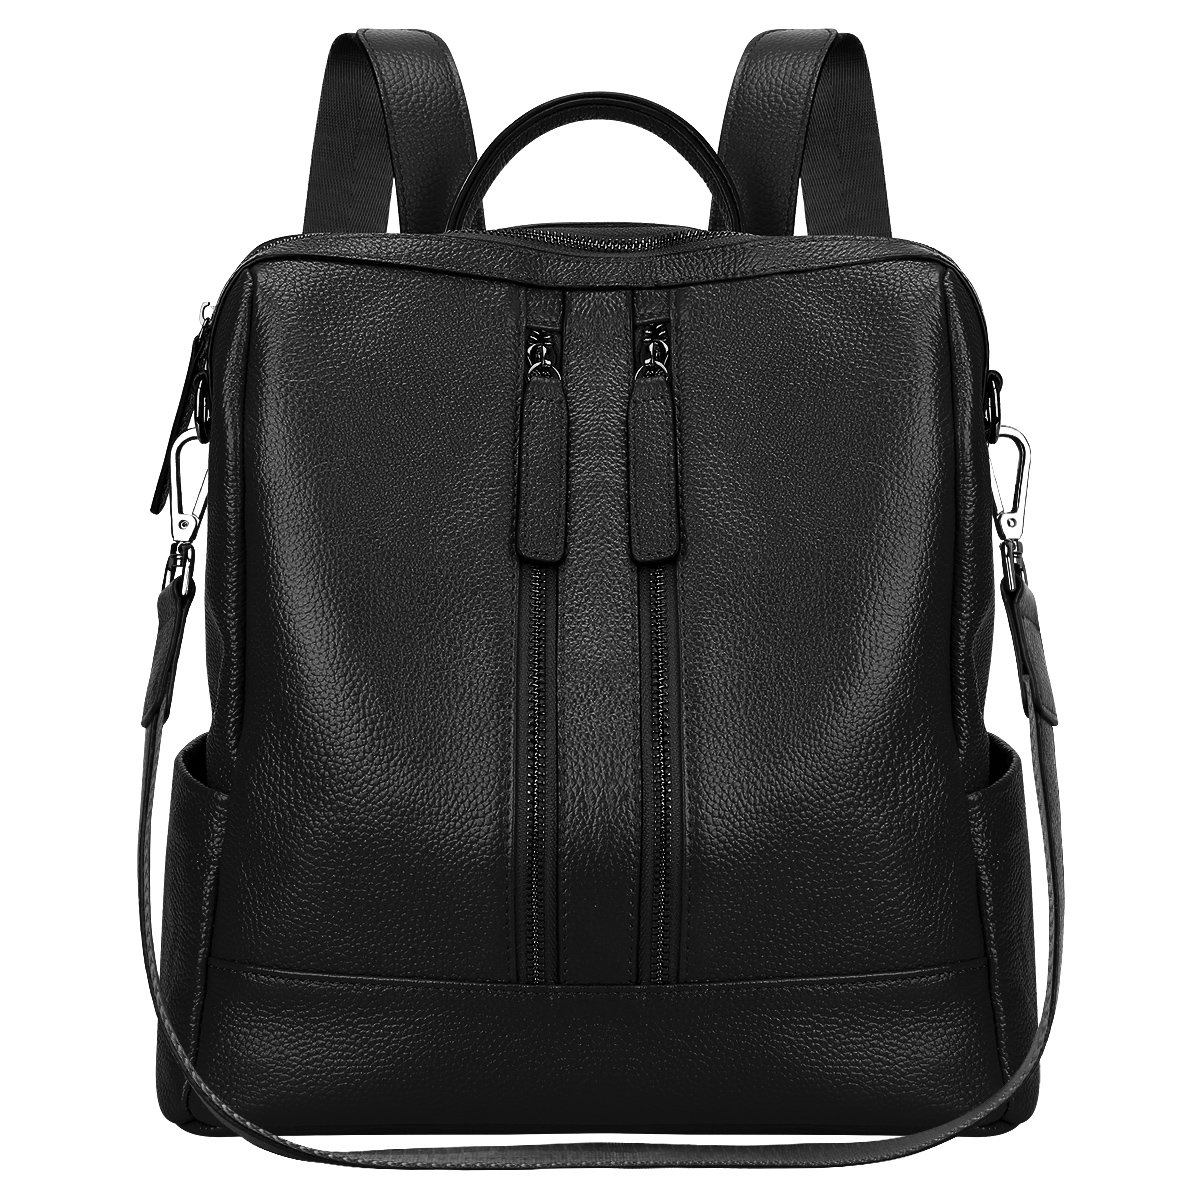 S-ZONE Lightweight Women Genuine Leather Backpack Casual Shoulder Bag Purse Medium (Black)